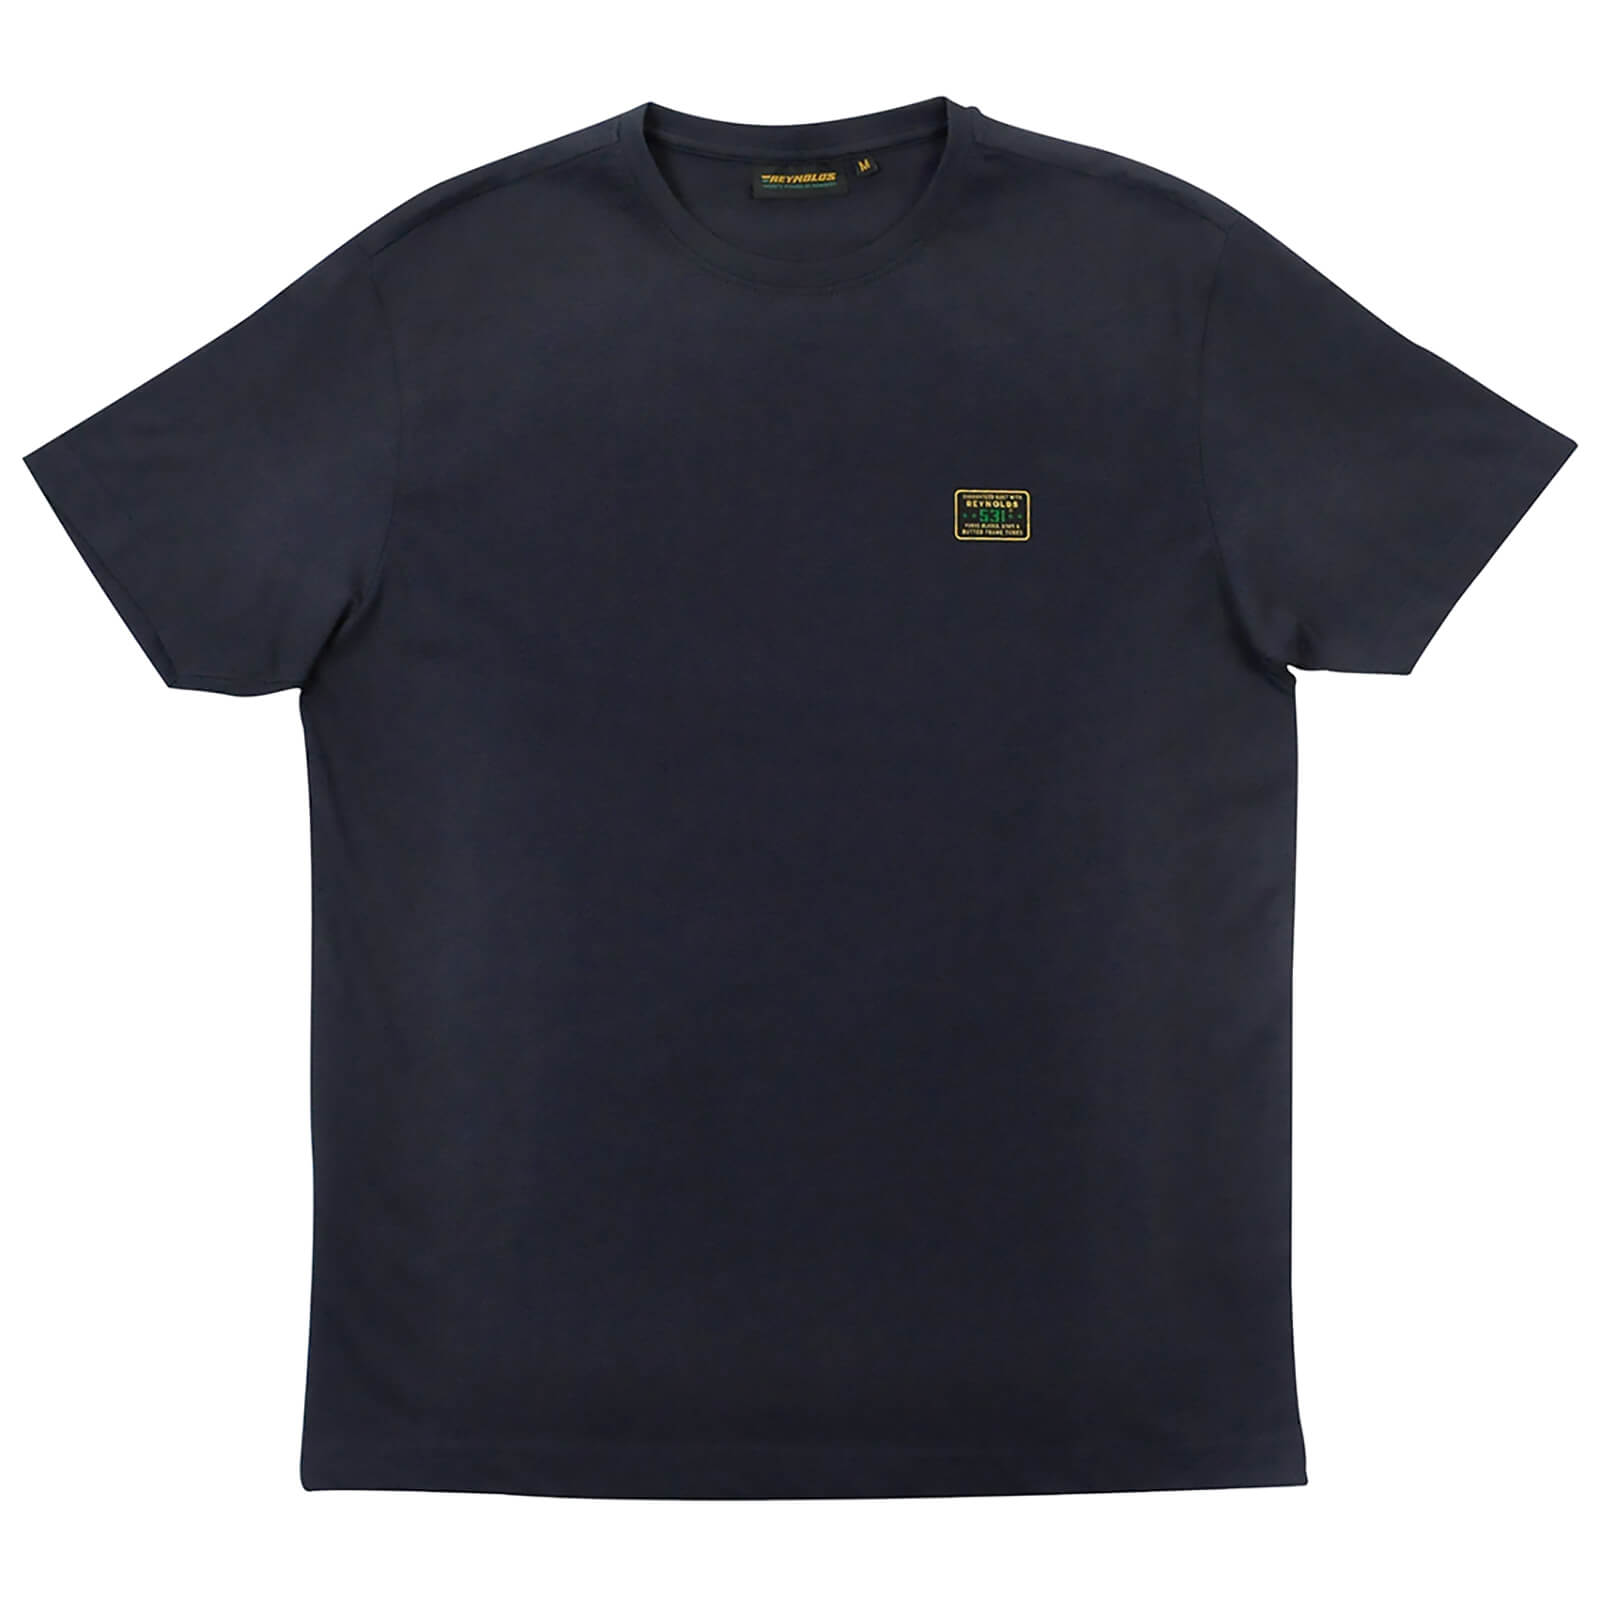 Reynolds 531 Stars Decal T-Shirt - Navy